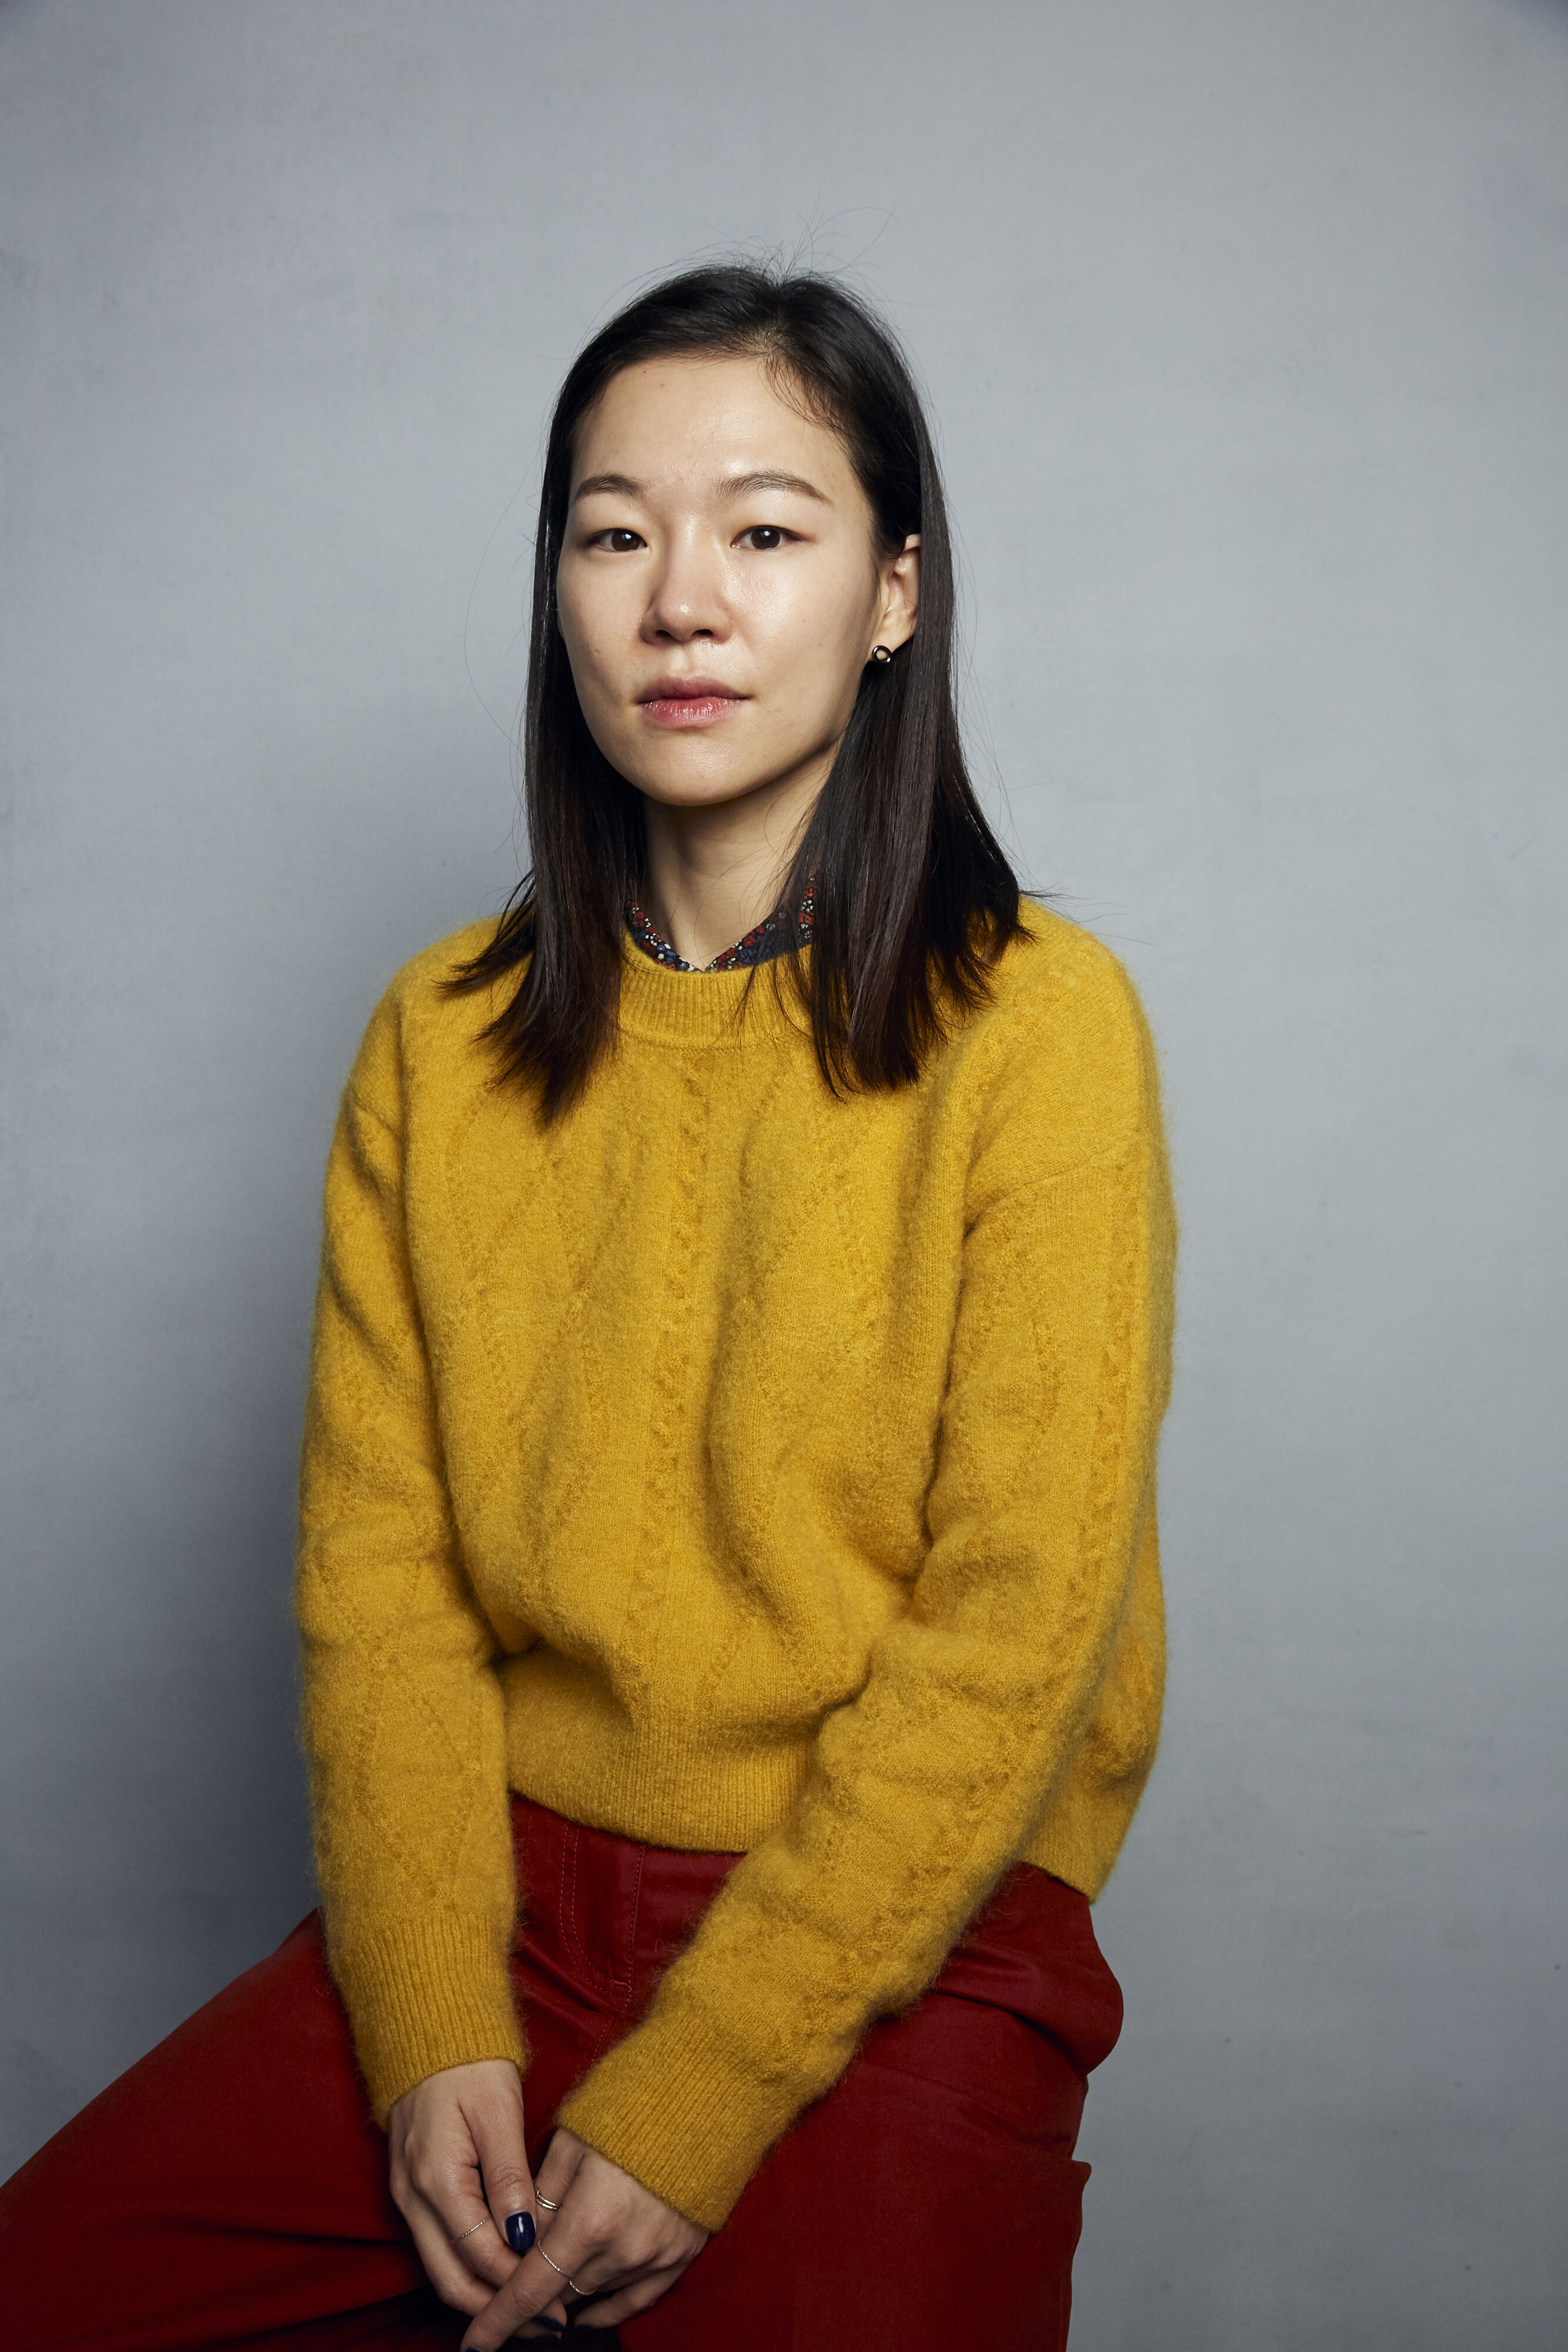 """Han Yeri poses for a portrait to promote the film """"Minari"""" at the Music Lodge during the Sundance Film Festival on Monday, Jan. 27, 2020, in Park City, Utah. (Photo by Taylor Jewell/Invision/AP)"""